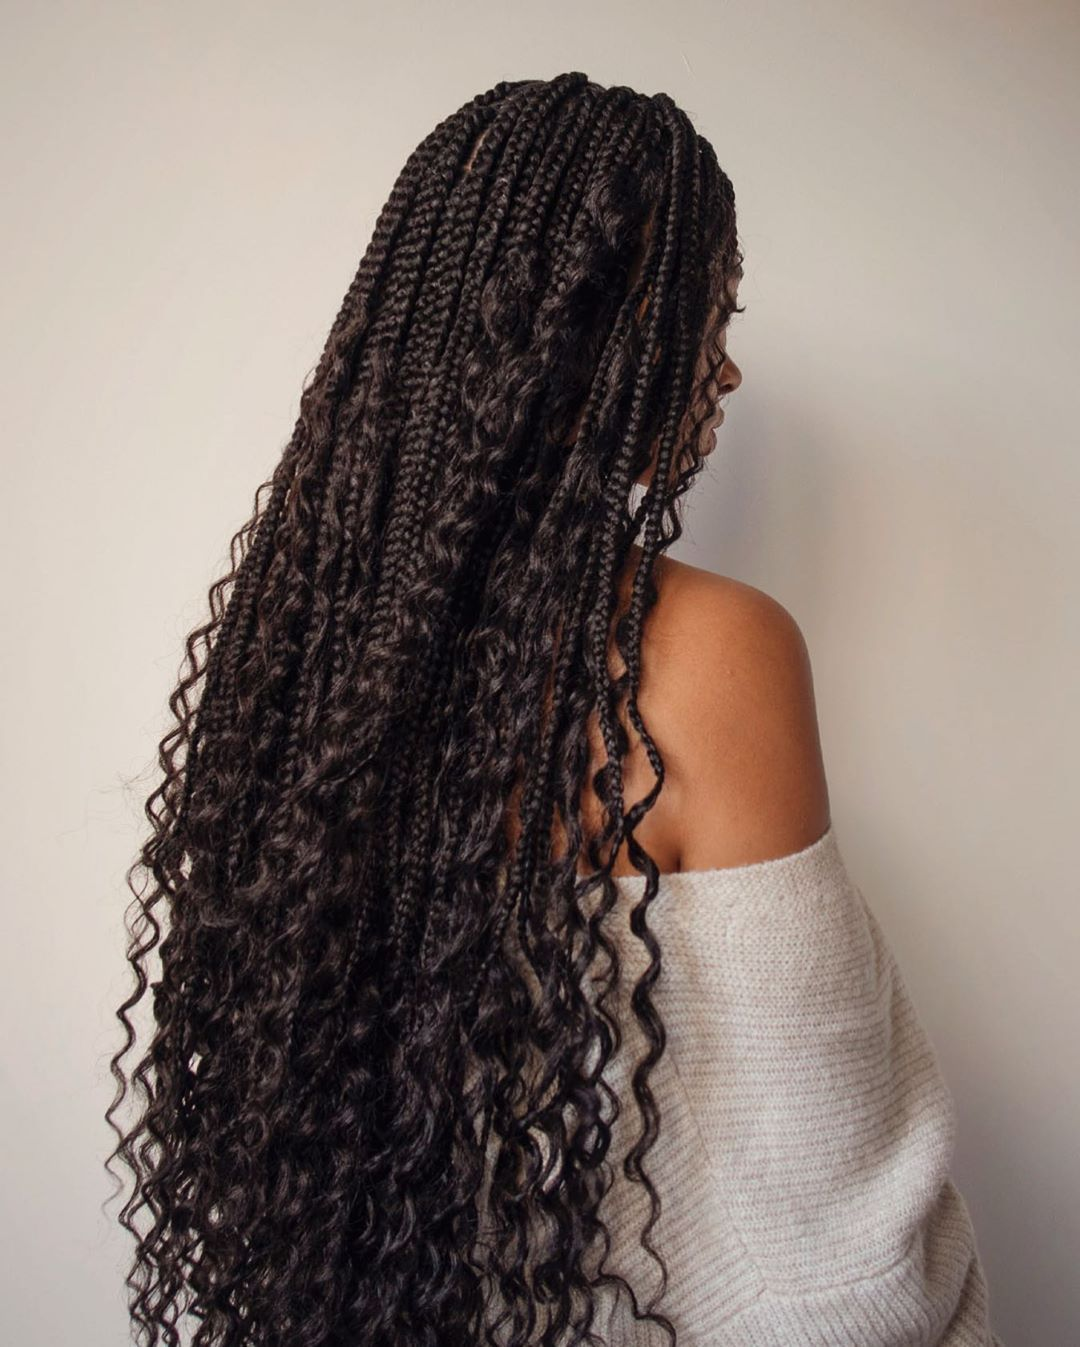 Features | Un-ruly | Braided hairstyles for black women cornrows ...